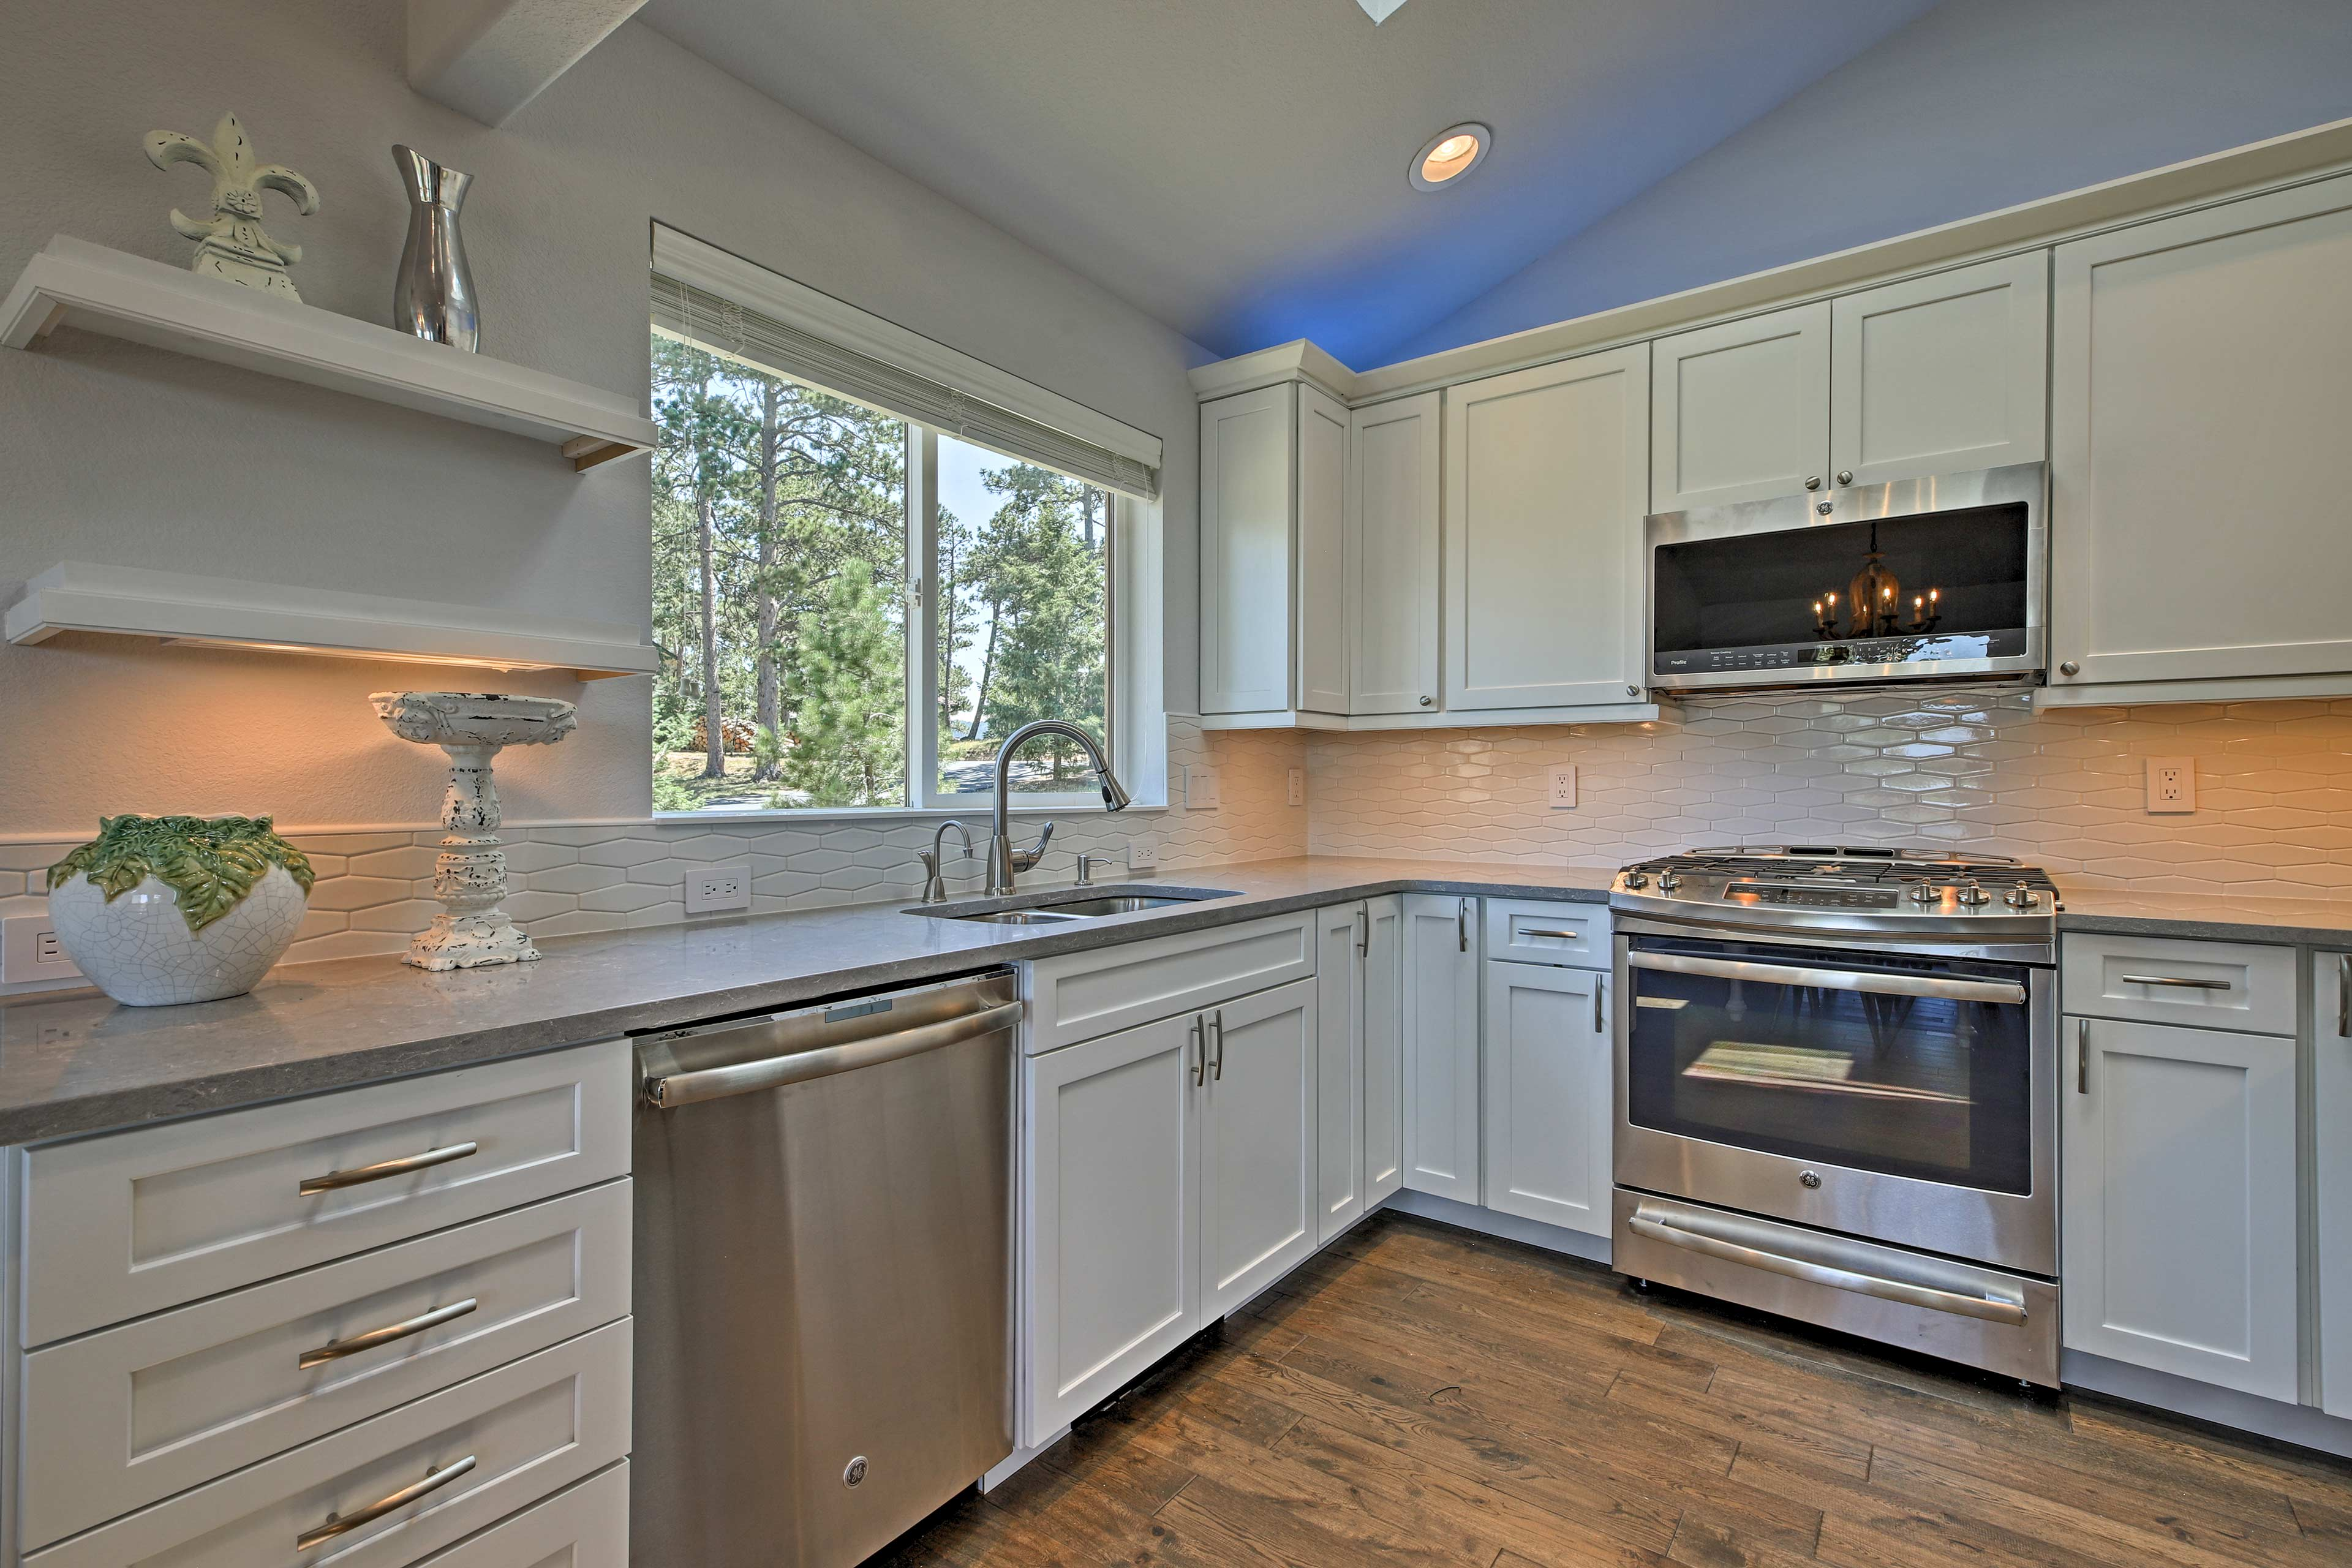 Try out a new recipe in the fully equipped gourmet kitchen.